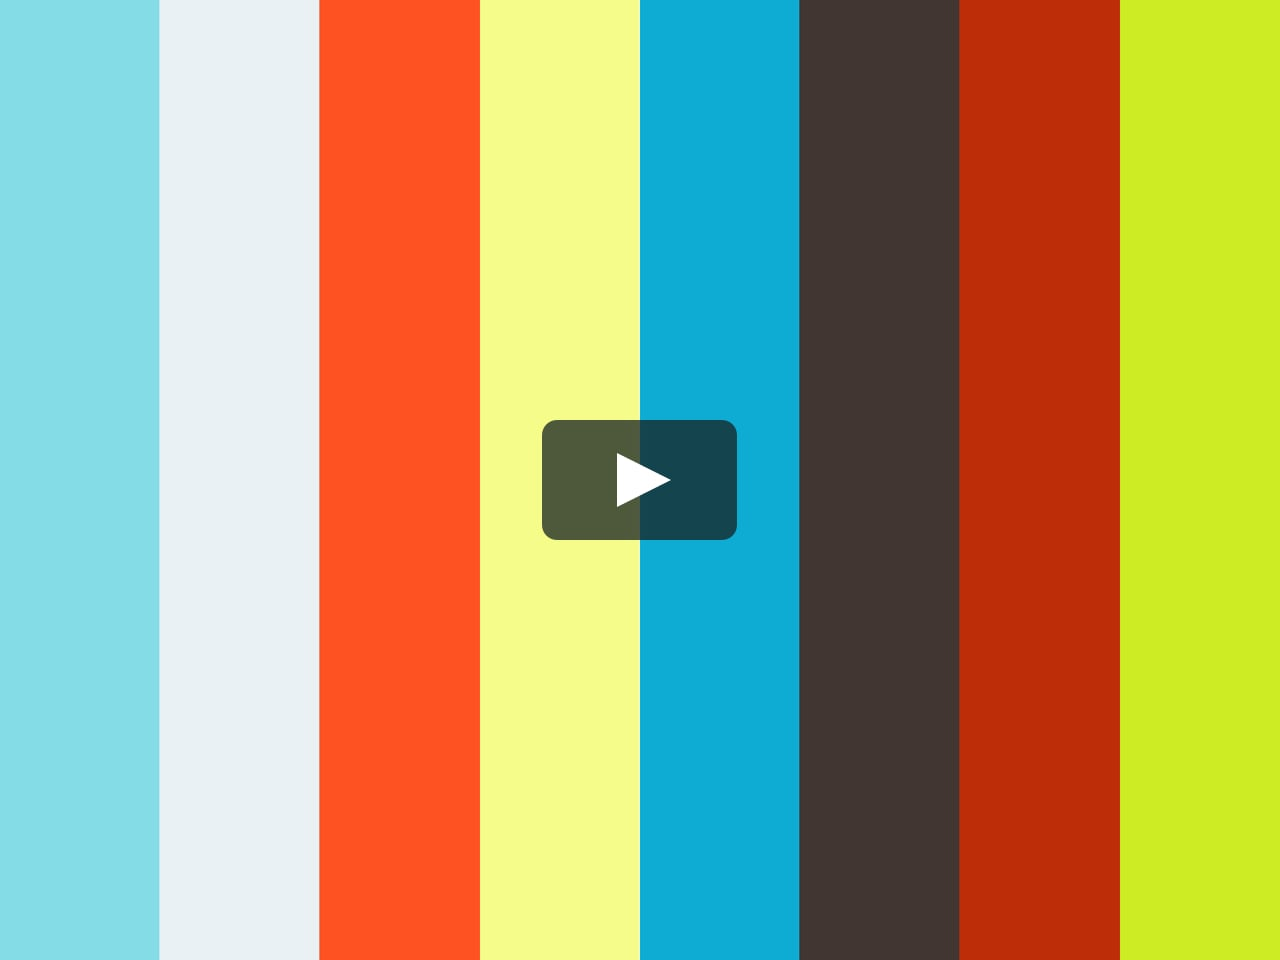 double line graph examples on vimeo. Black Bedroom Furniture Sets. Home Design Ideas